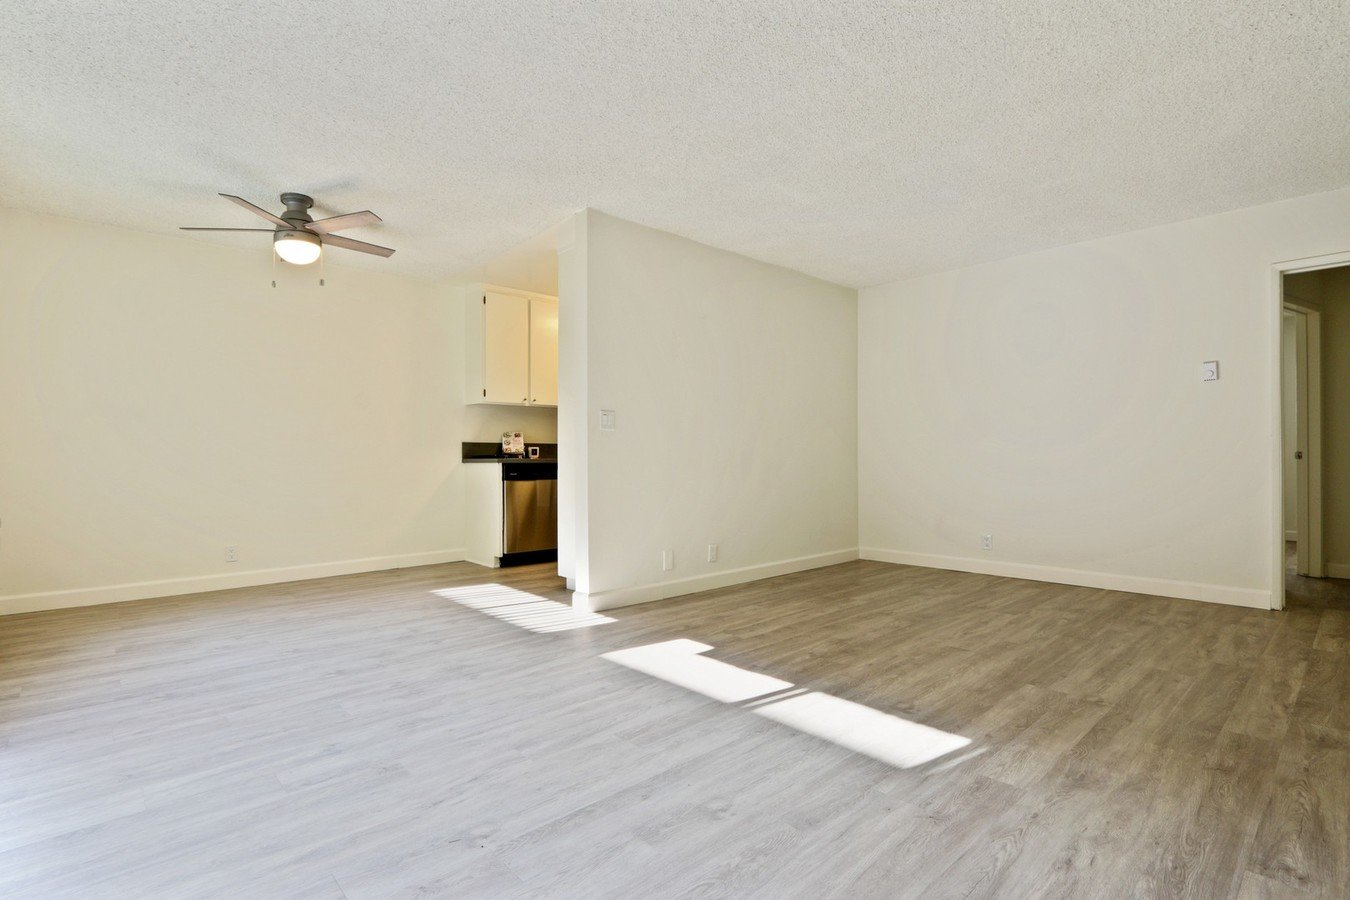 1 Bedroom 1 Bathroom Apartment for rent at Brockton Avenue Apartments in Los Angeles, CA